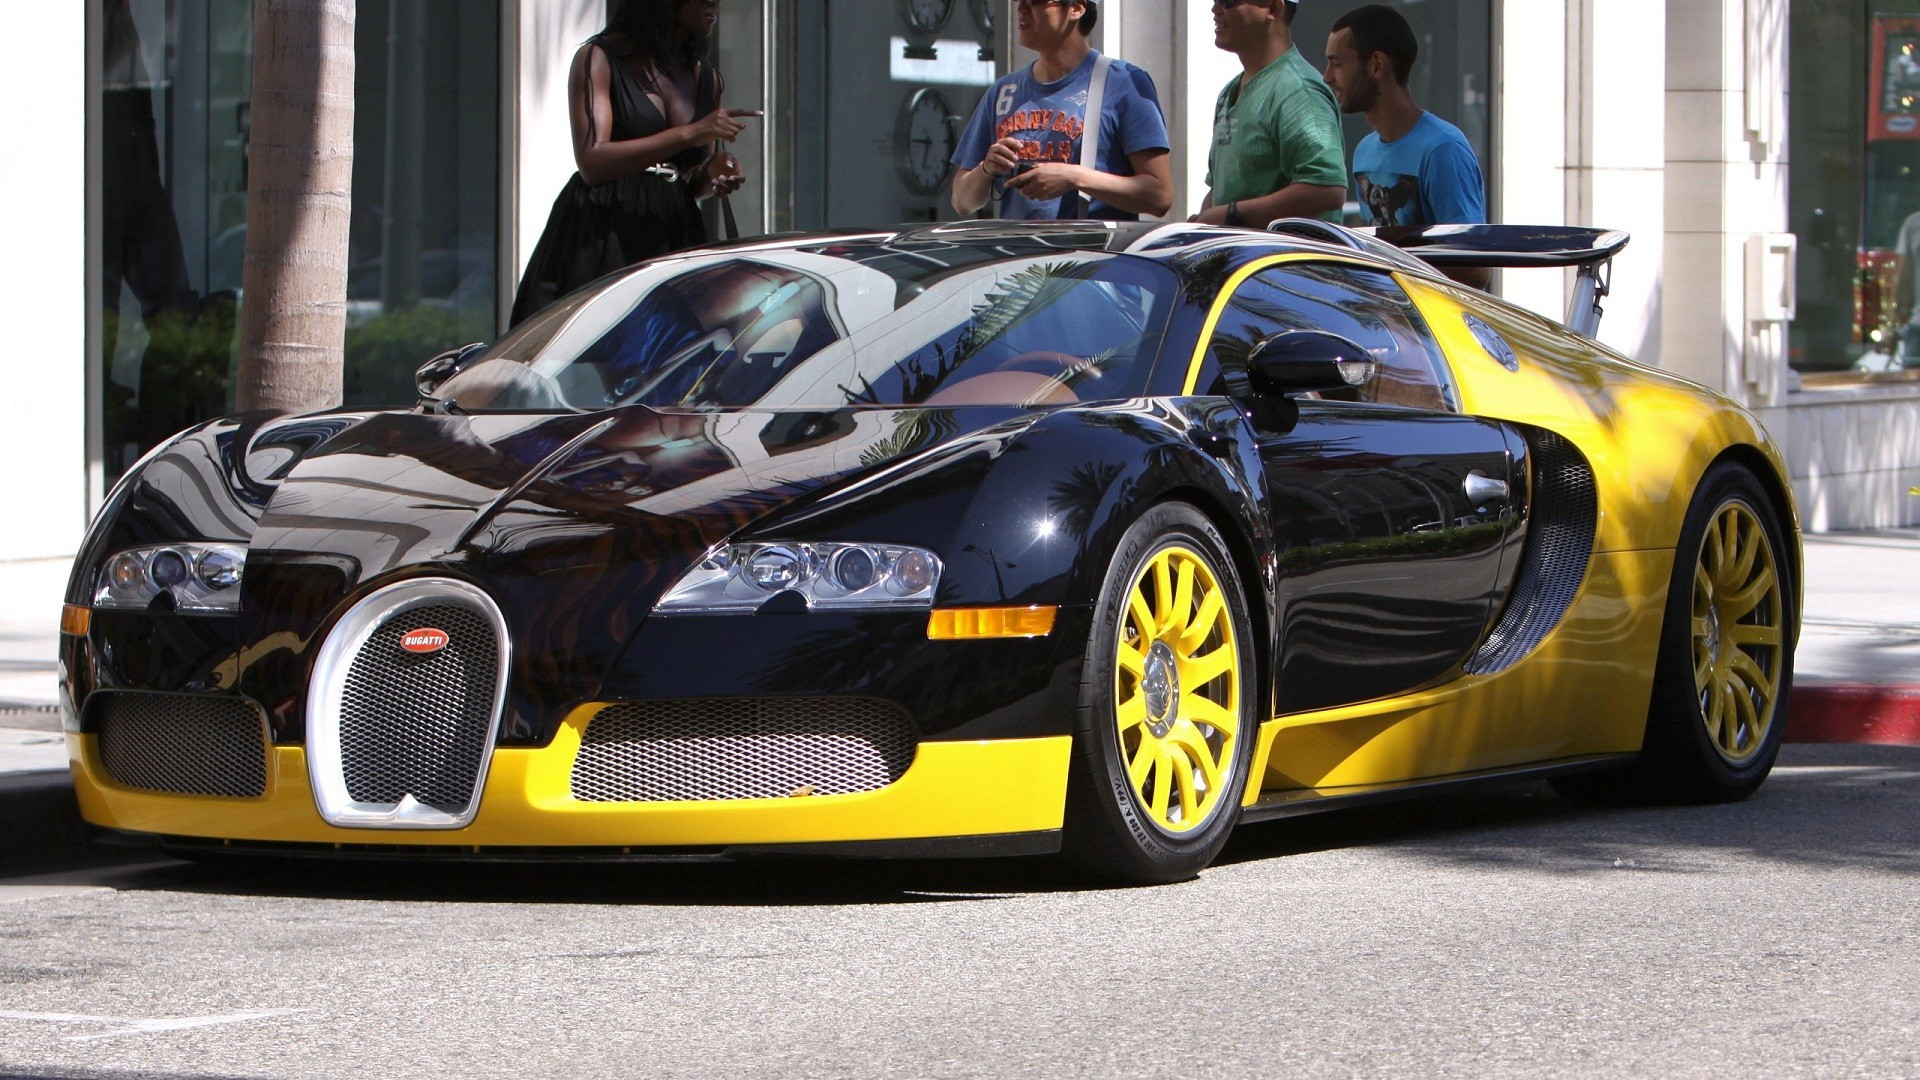 cars Bugatti vehicles HD Wallpaper